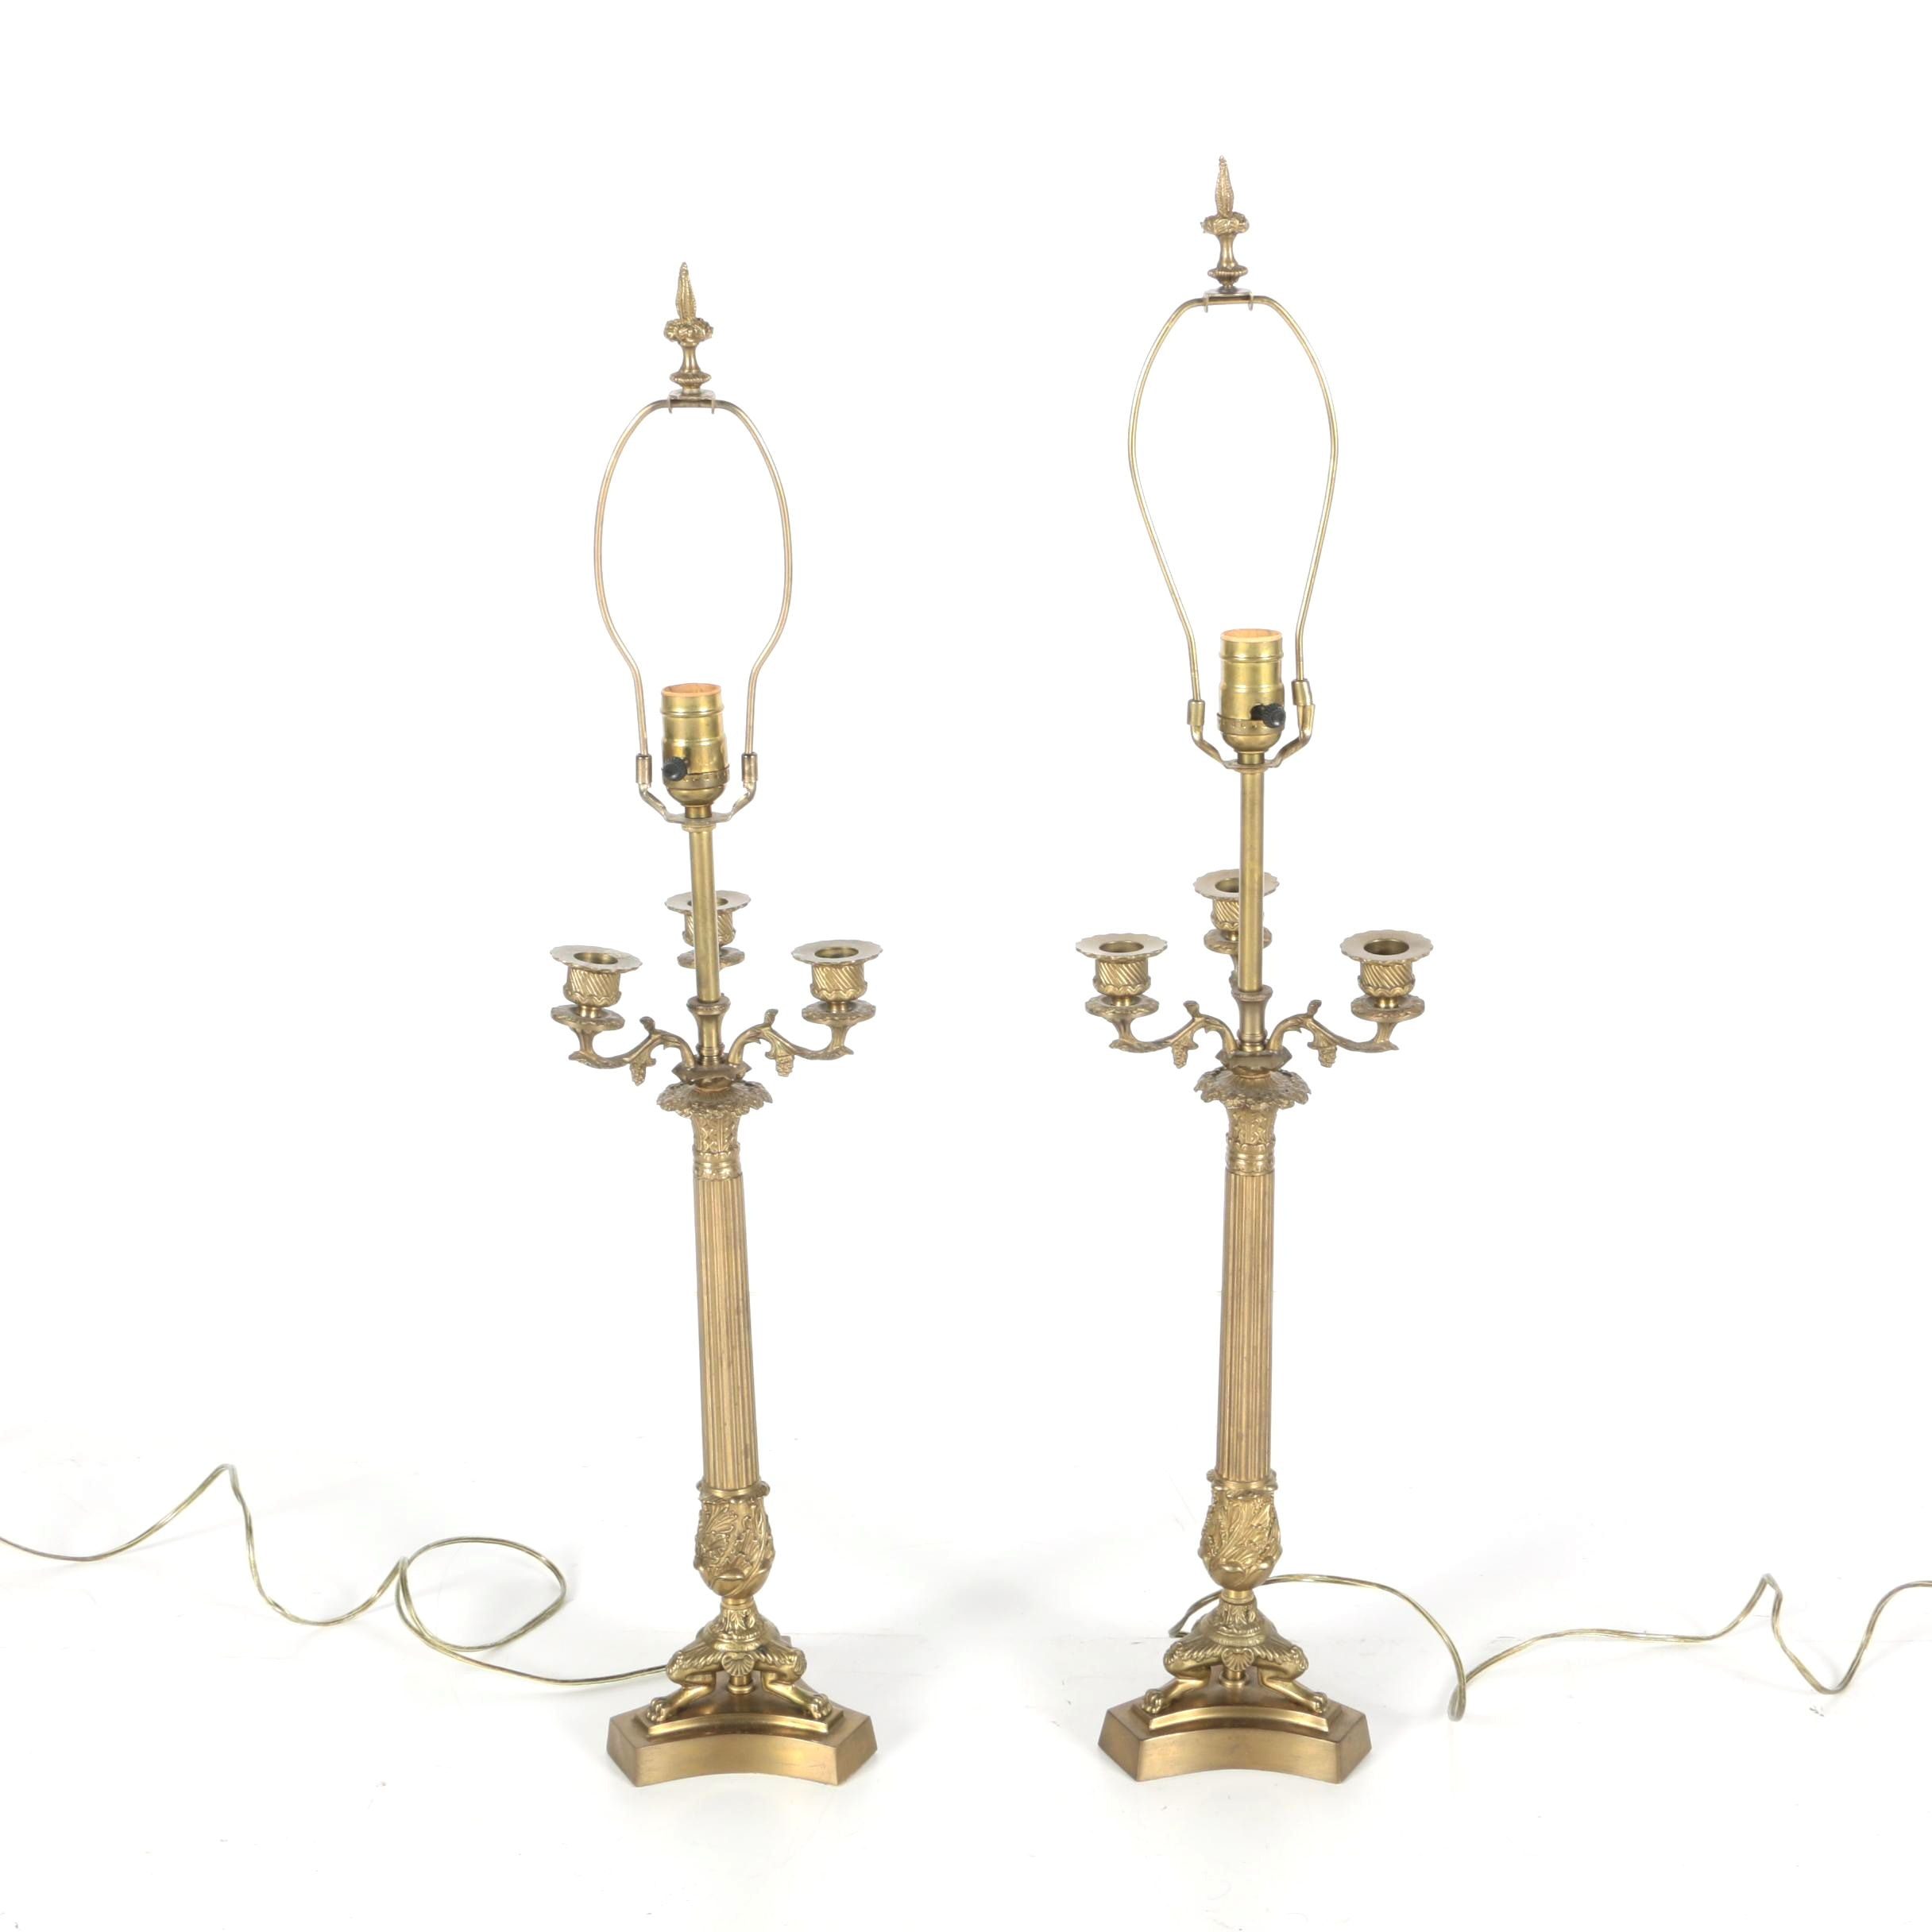 Pair of Classical Revival Candelabra Style Table Lamps